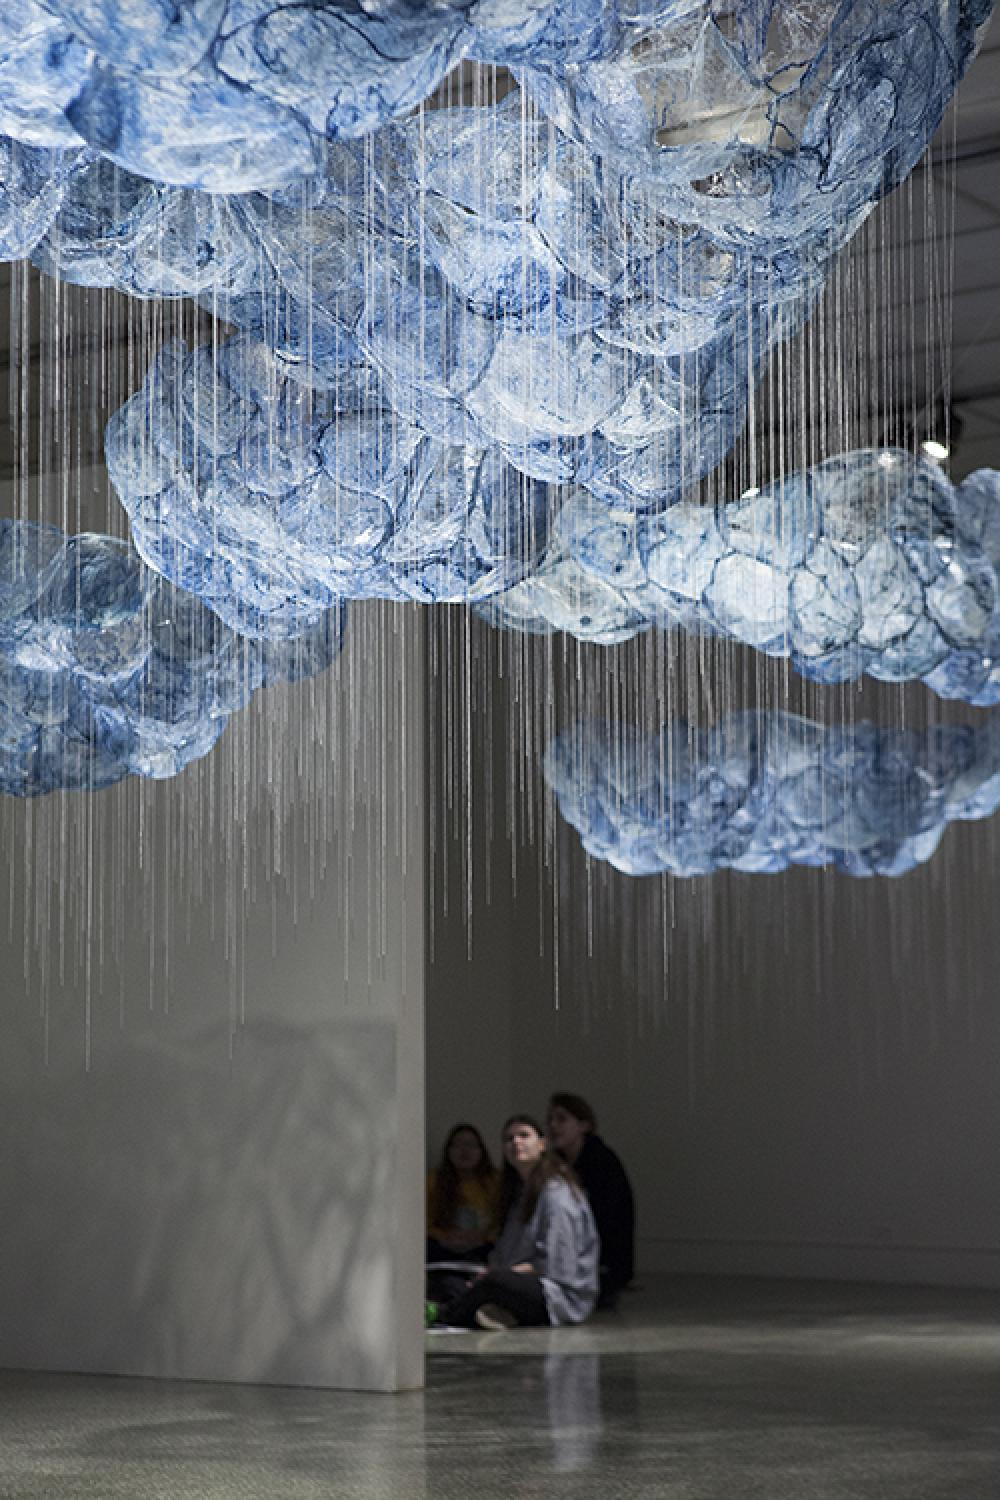 After All/Mending The Sky, 2017-2018, silk, cyanotype, needles, thread, wire, hardware, dimensions variable, site-responsive installation from acclaimed artist Beili Liu who serves as program director for freshman Core Program in Studio Art